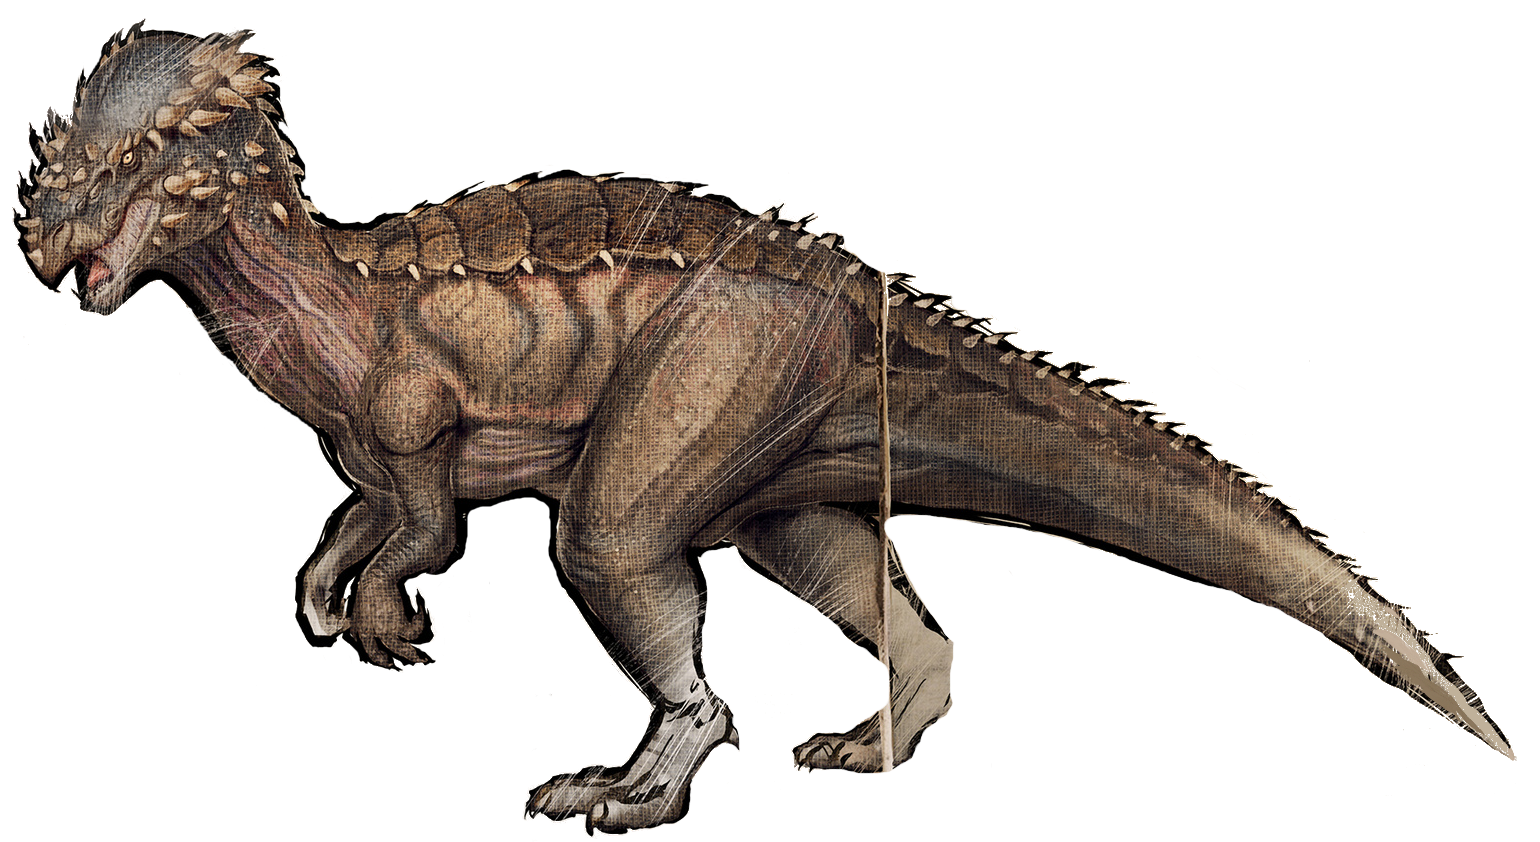 Pachycephalosaurus ark clipart images gallery for download 1540x842